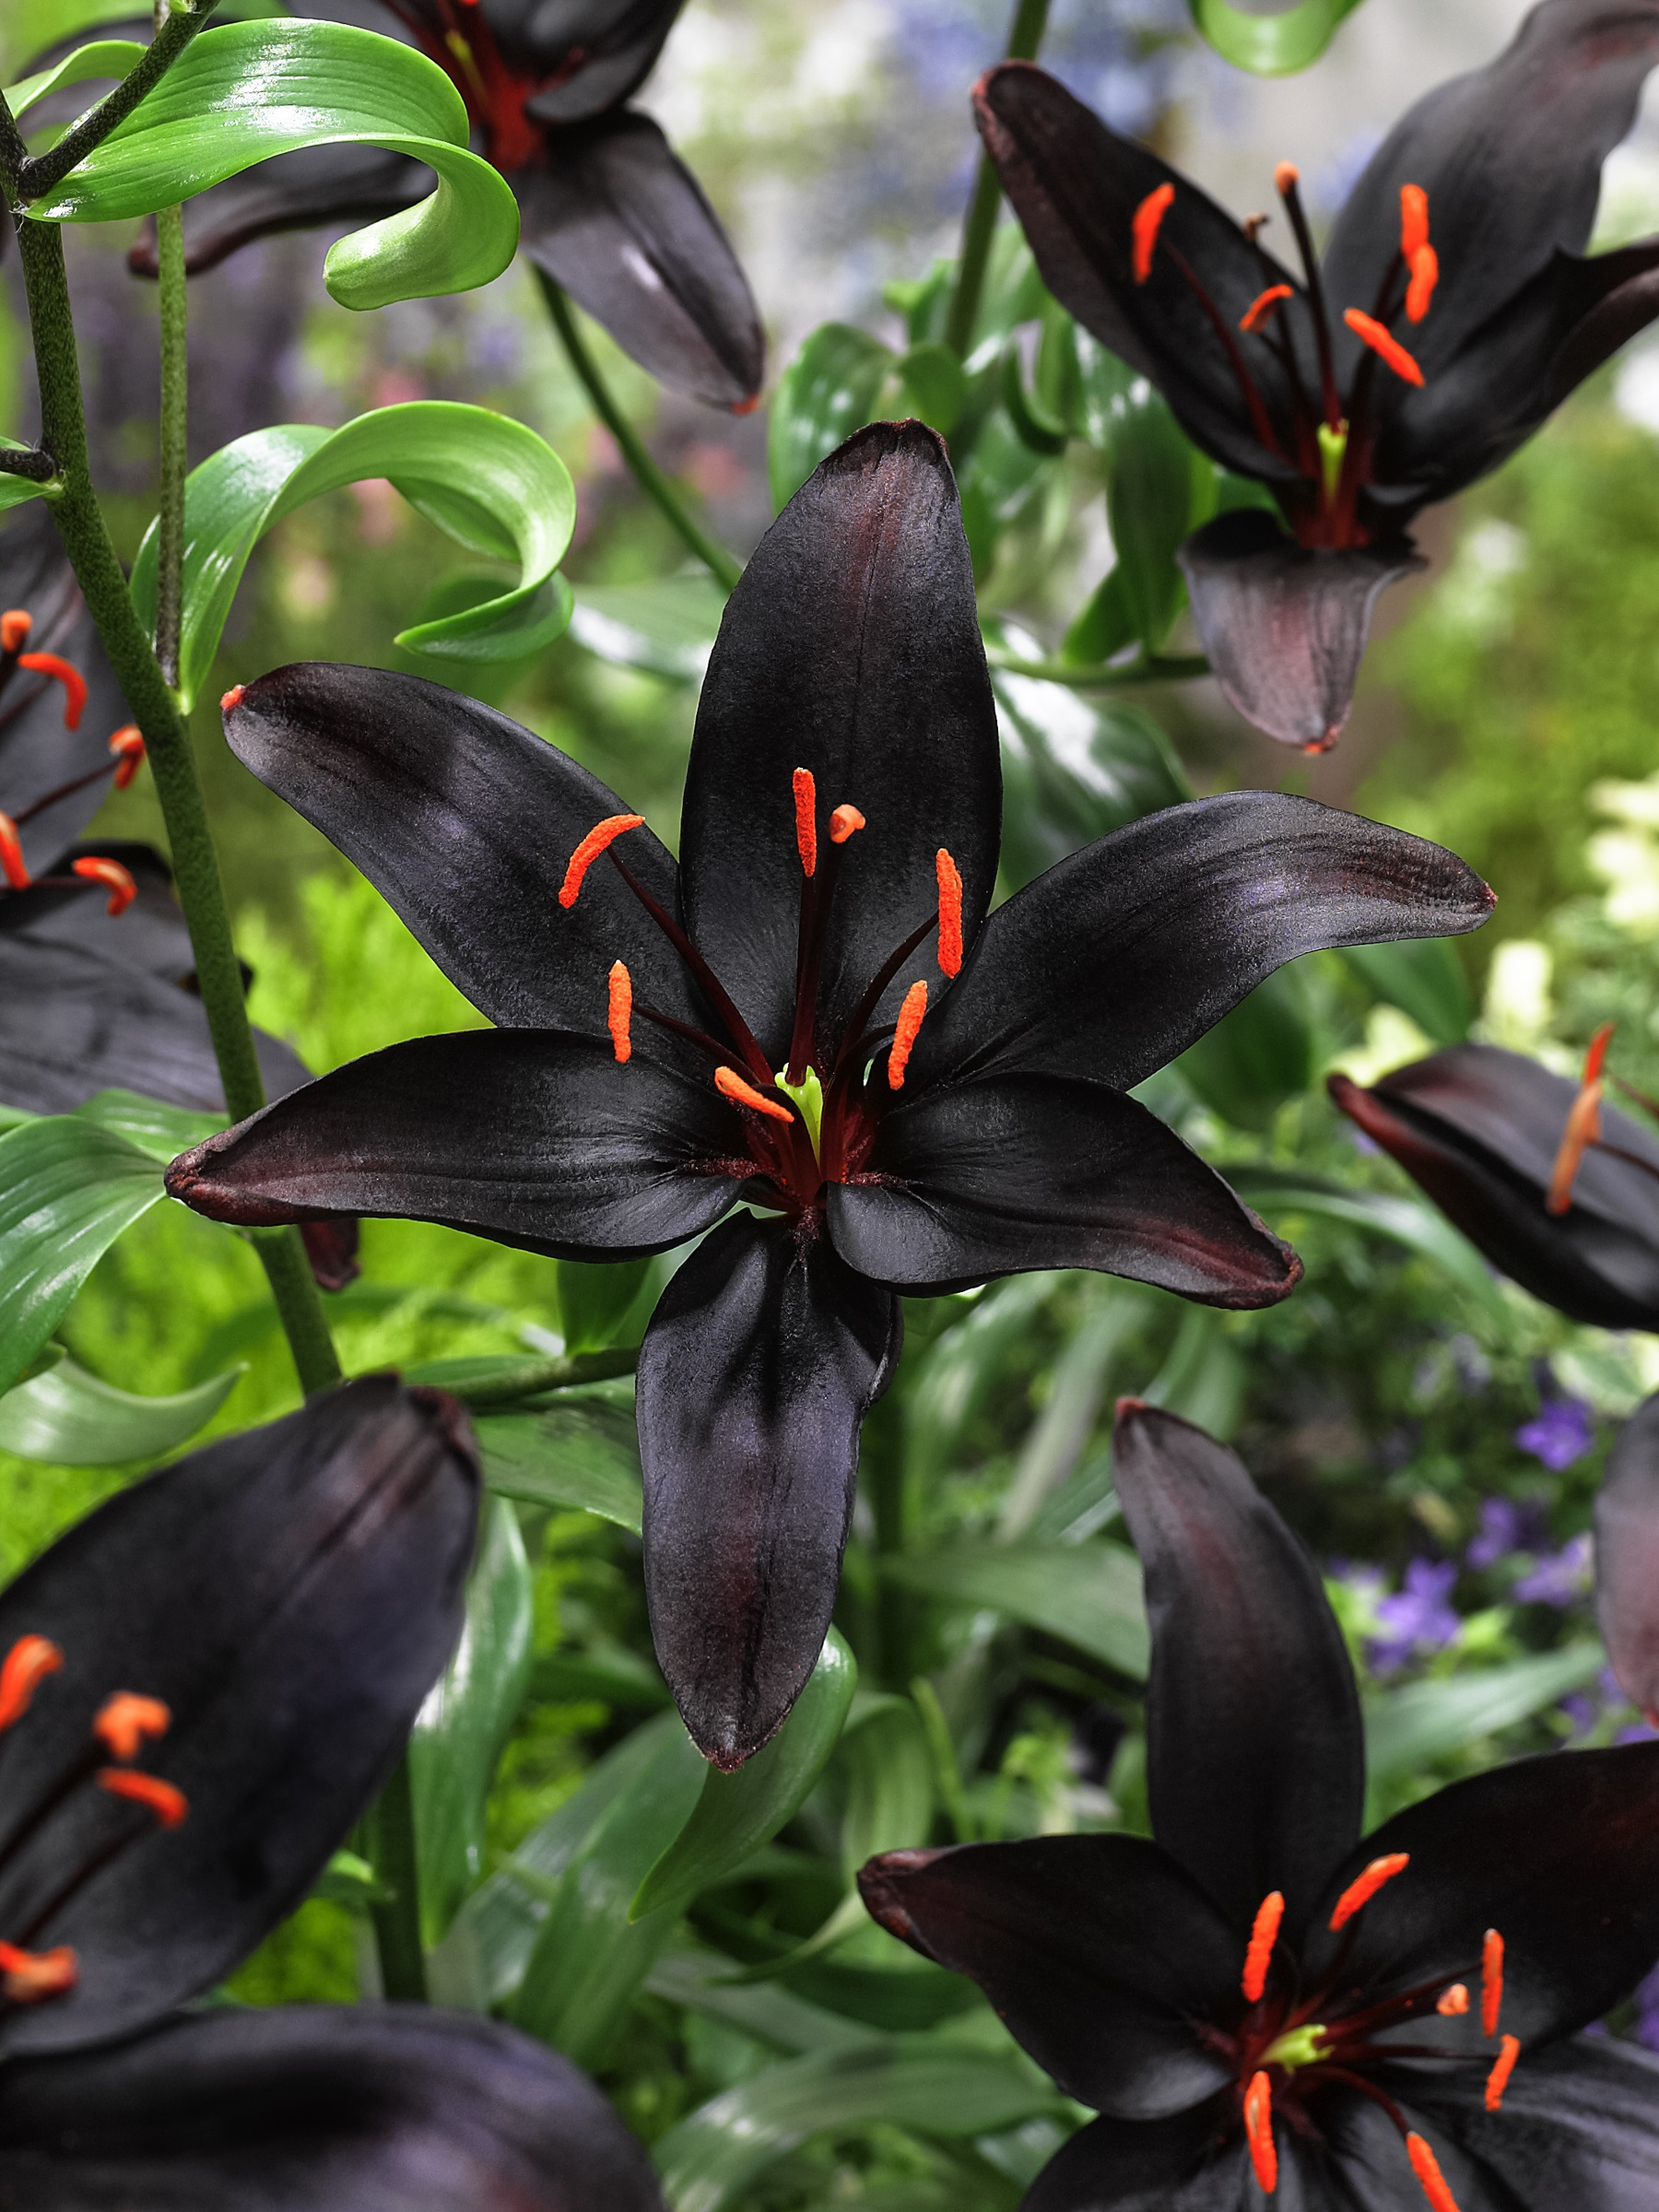 Lilies How To Care For Lily Flowers With A Look At Queen Of The